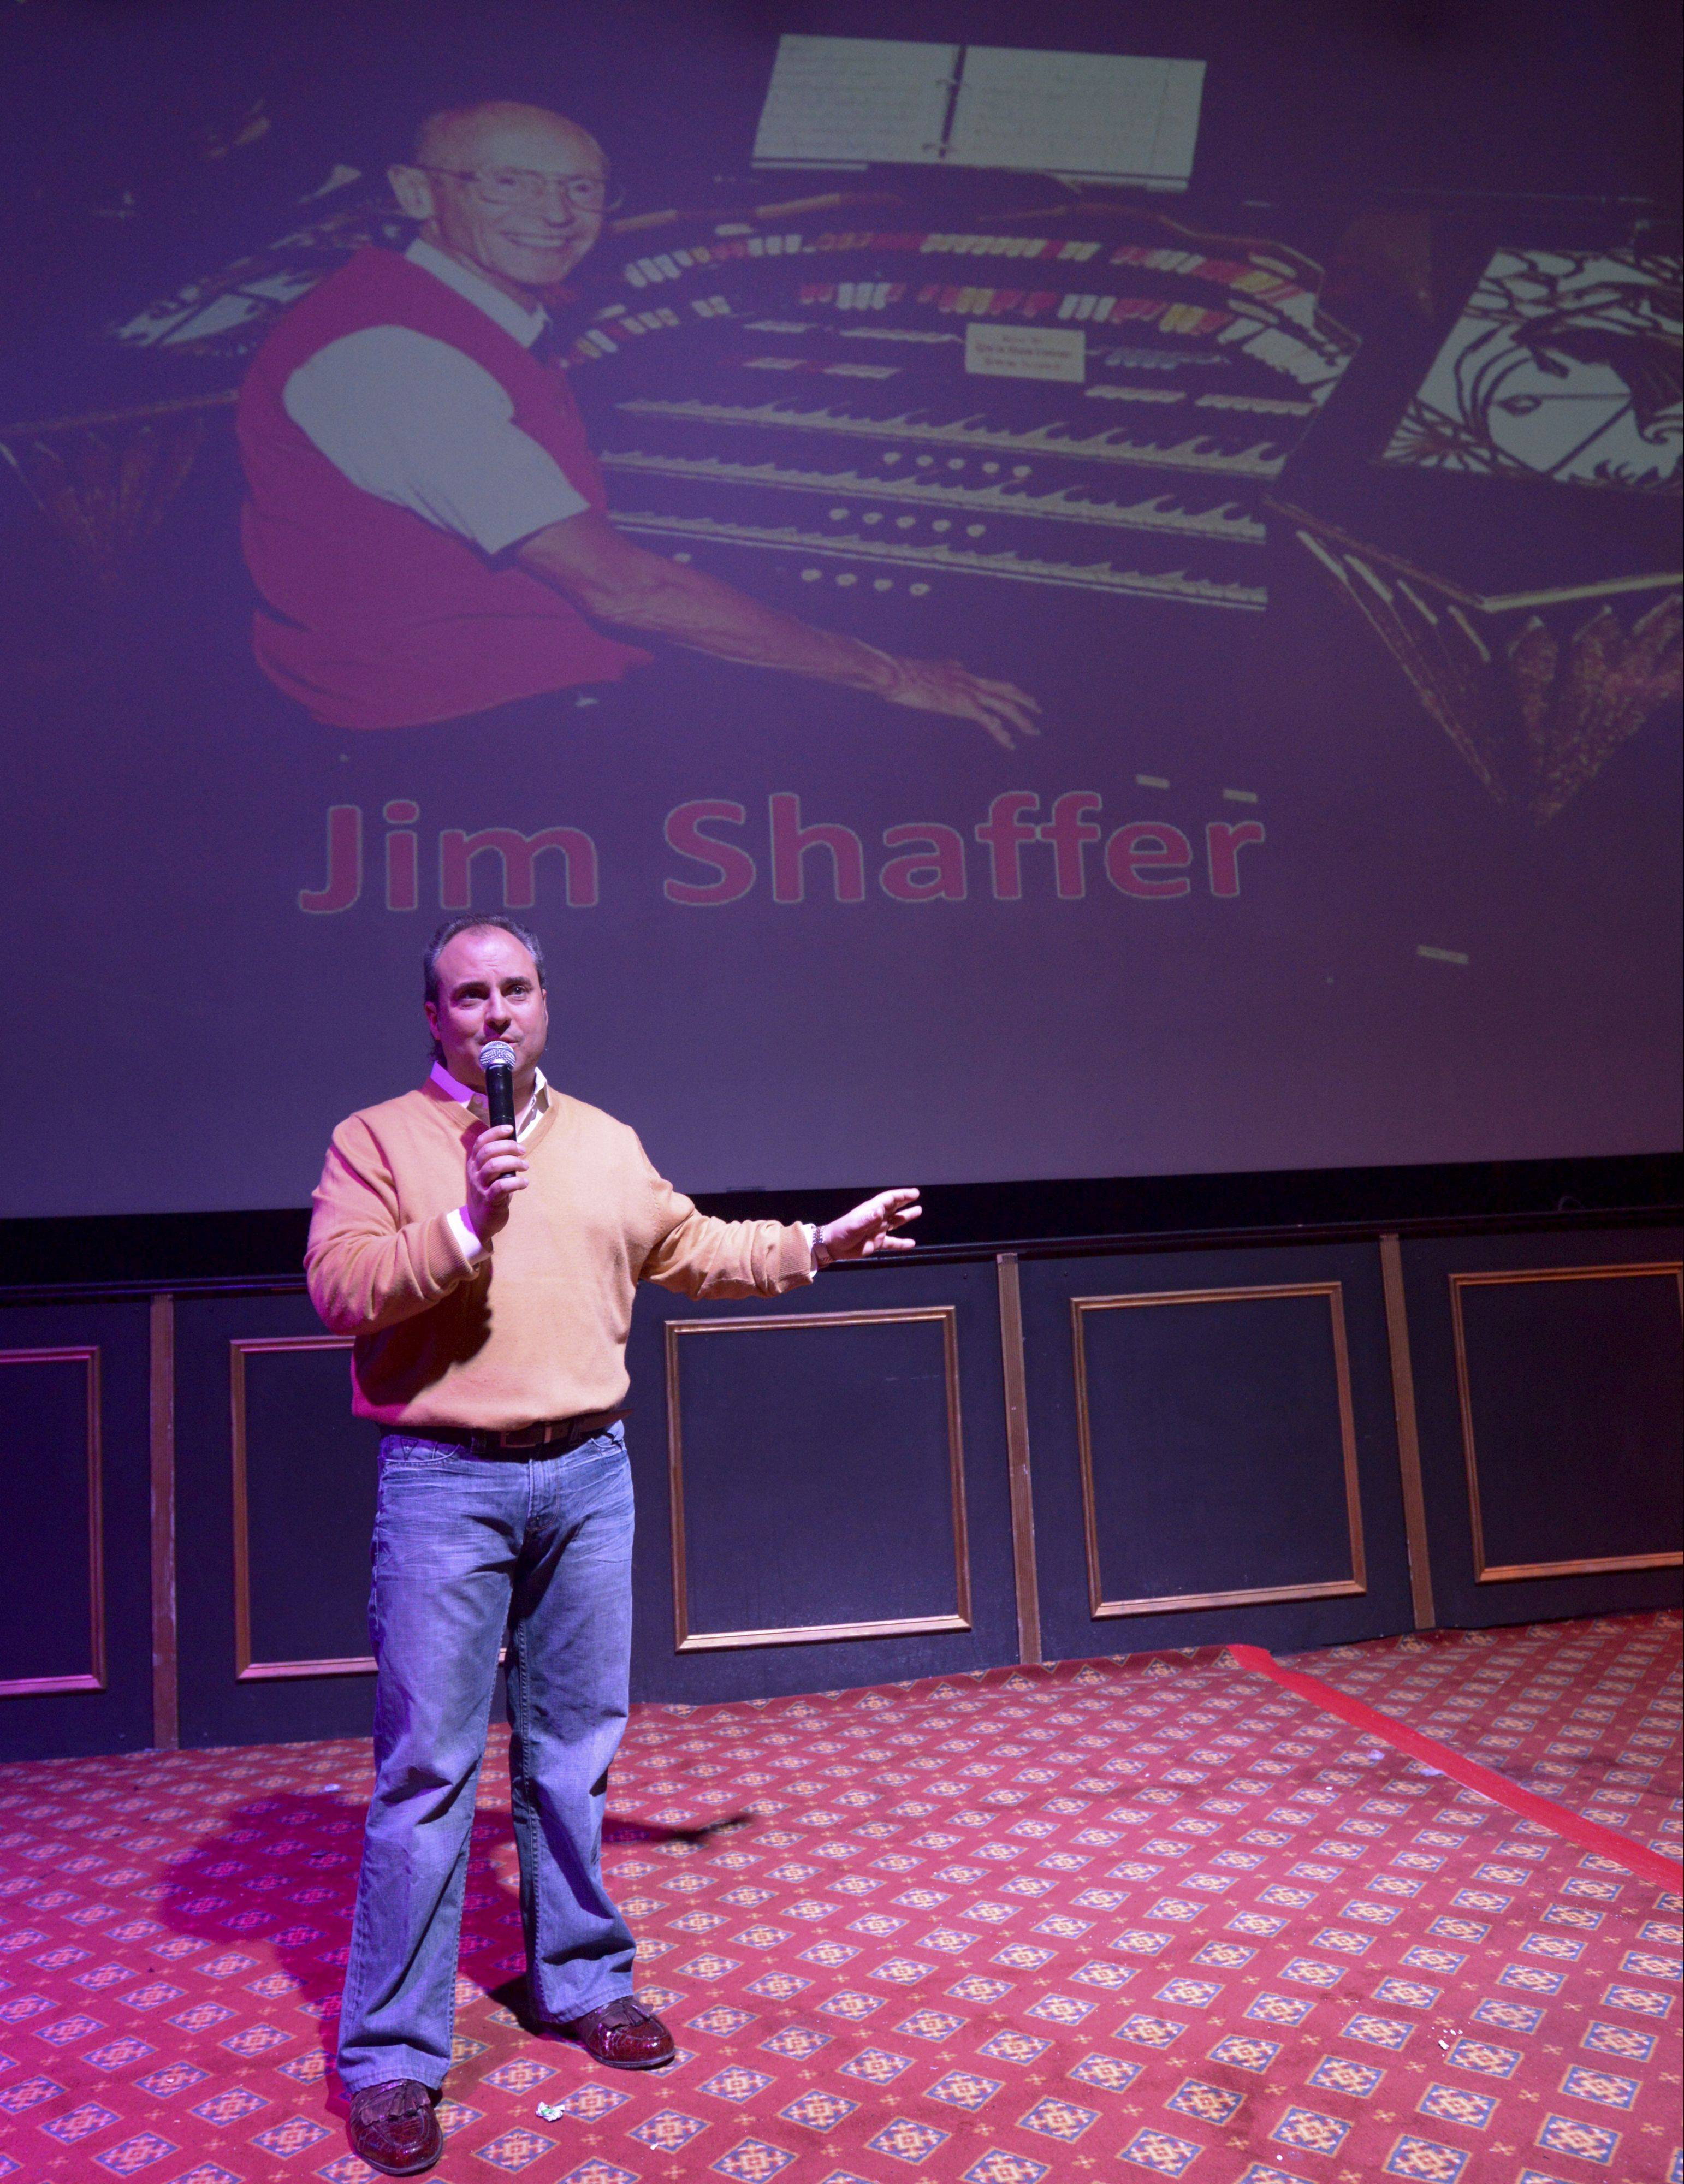 Arcada Theatre owner Ron Onesti kicks off a tribute Sunday to longtime organist Jim Shaffer, who died in November at age 78. Onesti said famous musicians who played the theater were in awe of Shaffer and the organ.